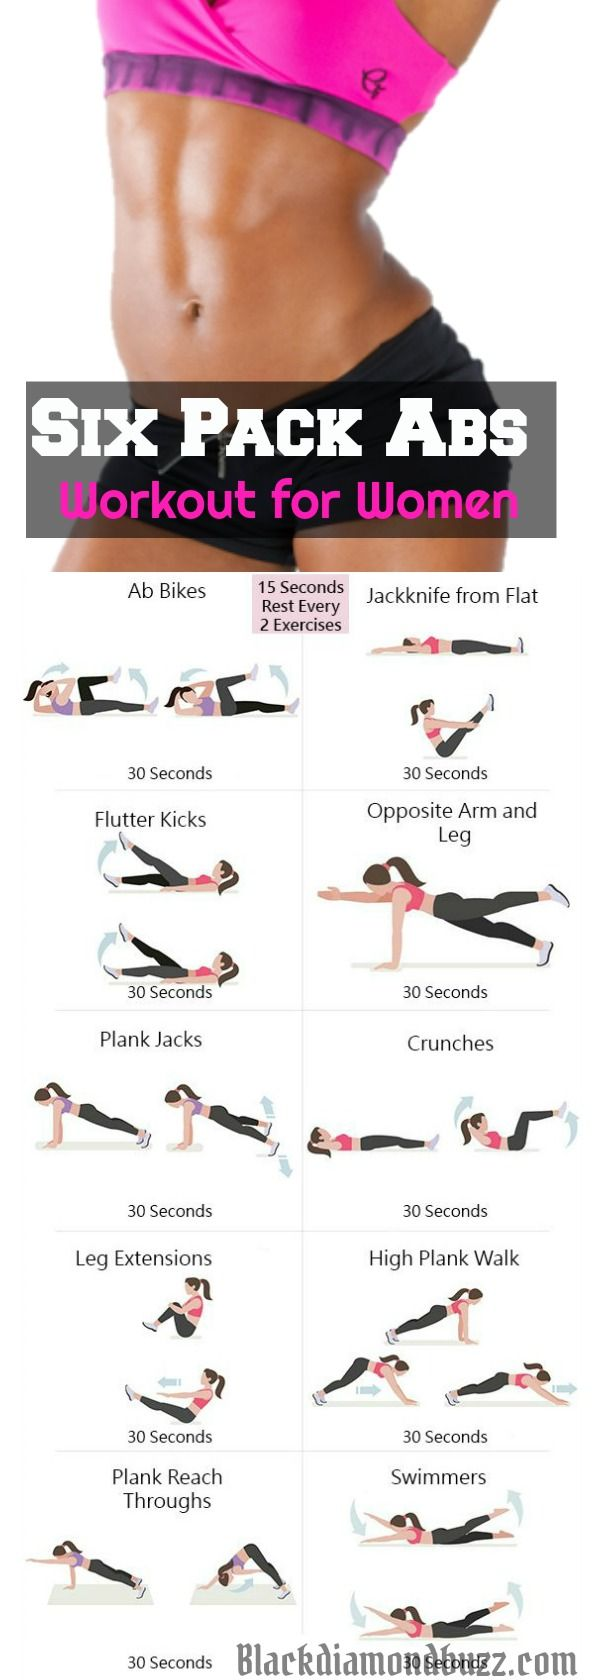 6 Minute Abs Workout for women to Slim and tone your waistline with this killer 6 minute abs workout at home! No equipment needed!